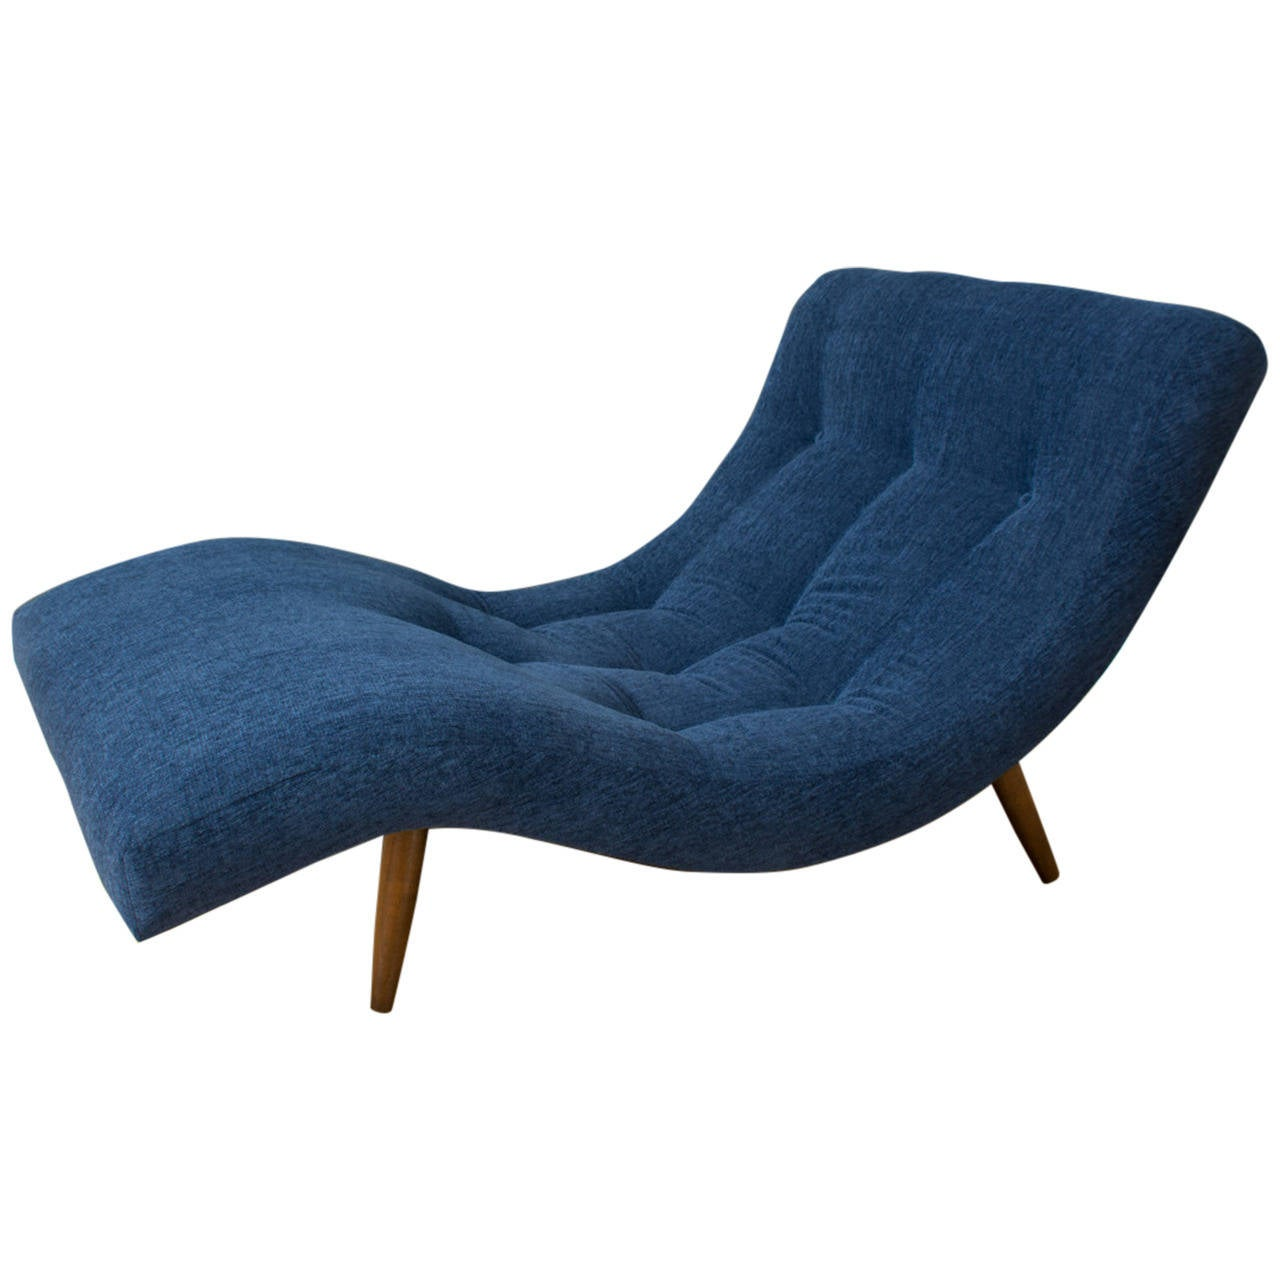 Vintage mid century chaise lounge chair by adrian pearsall for Century furniture chaise lounge